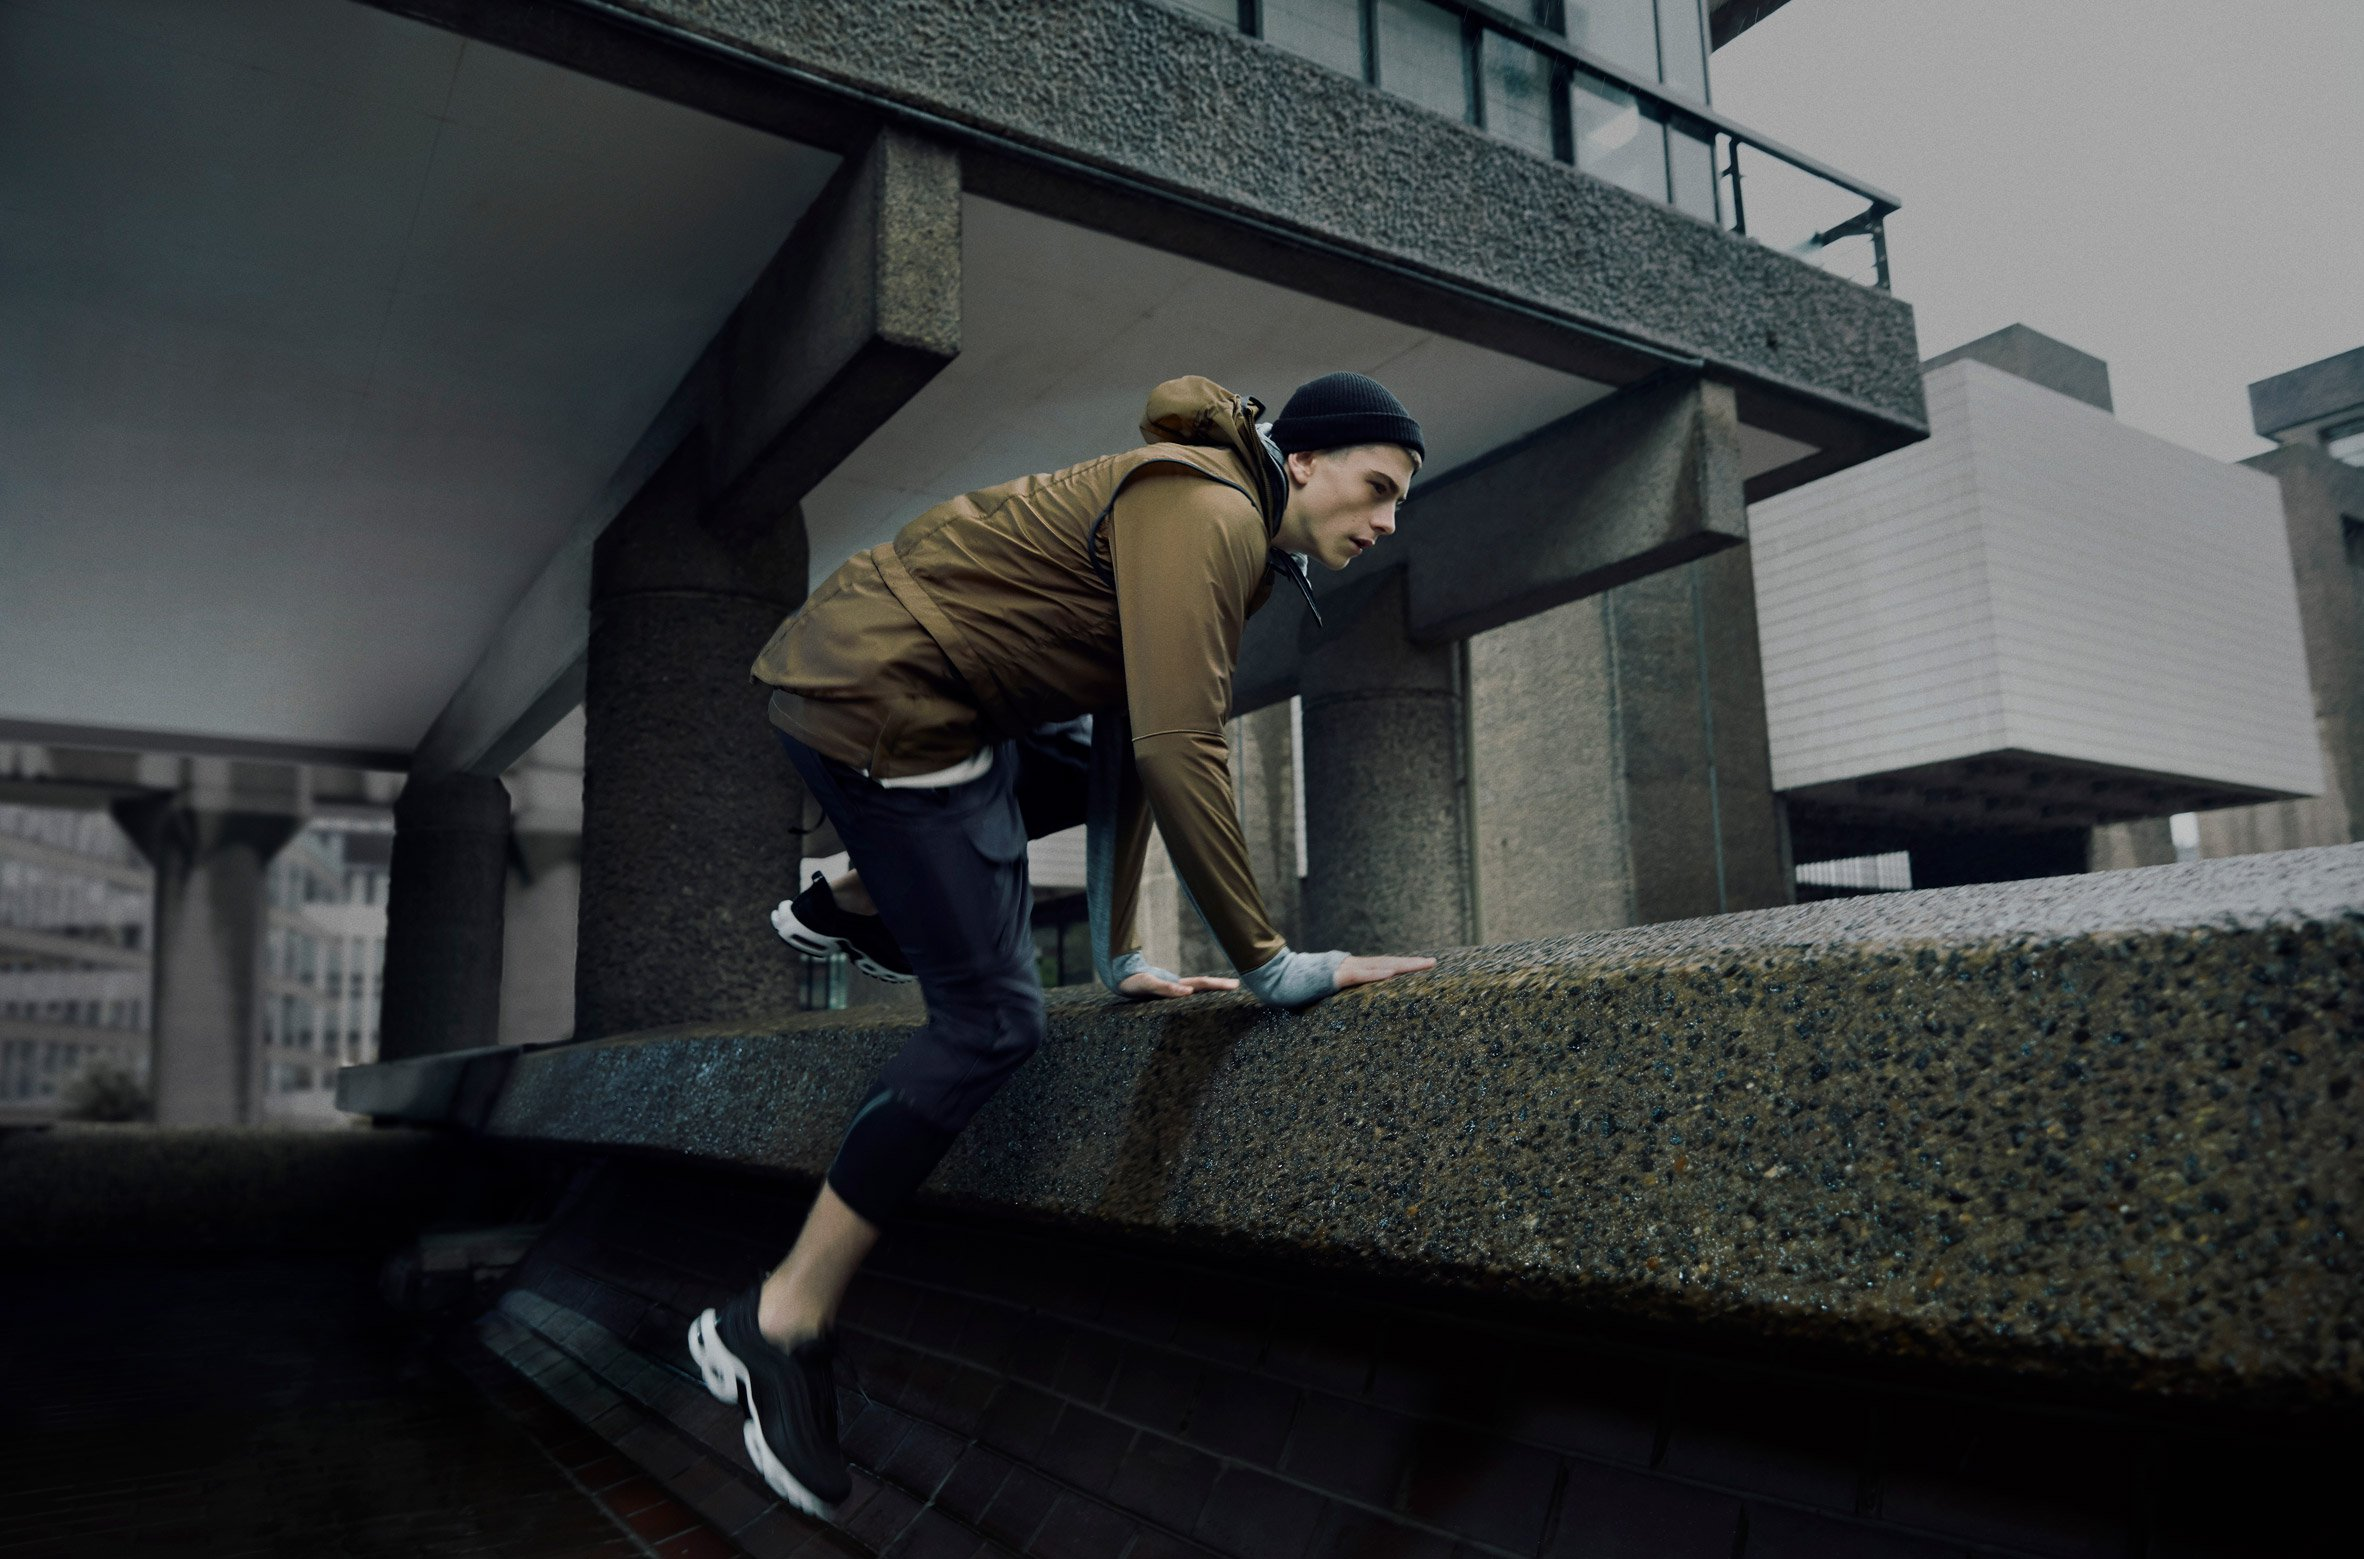 nike-advanced-apparel-exploration-collection-clothing-design_dezeen_2364_col_11.jpg